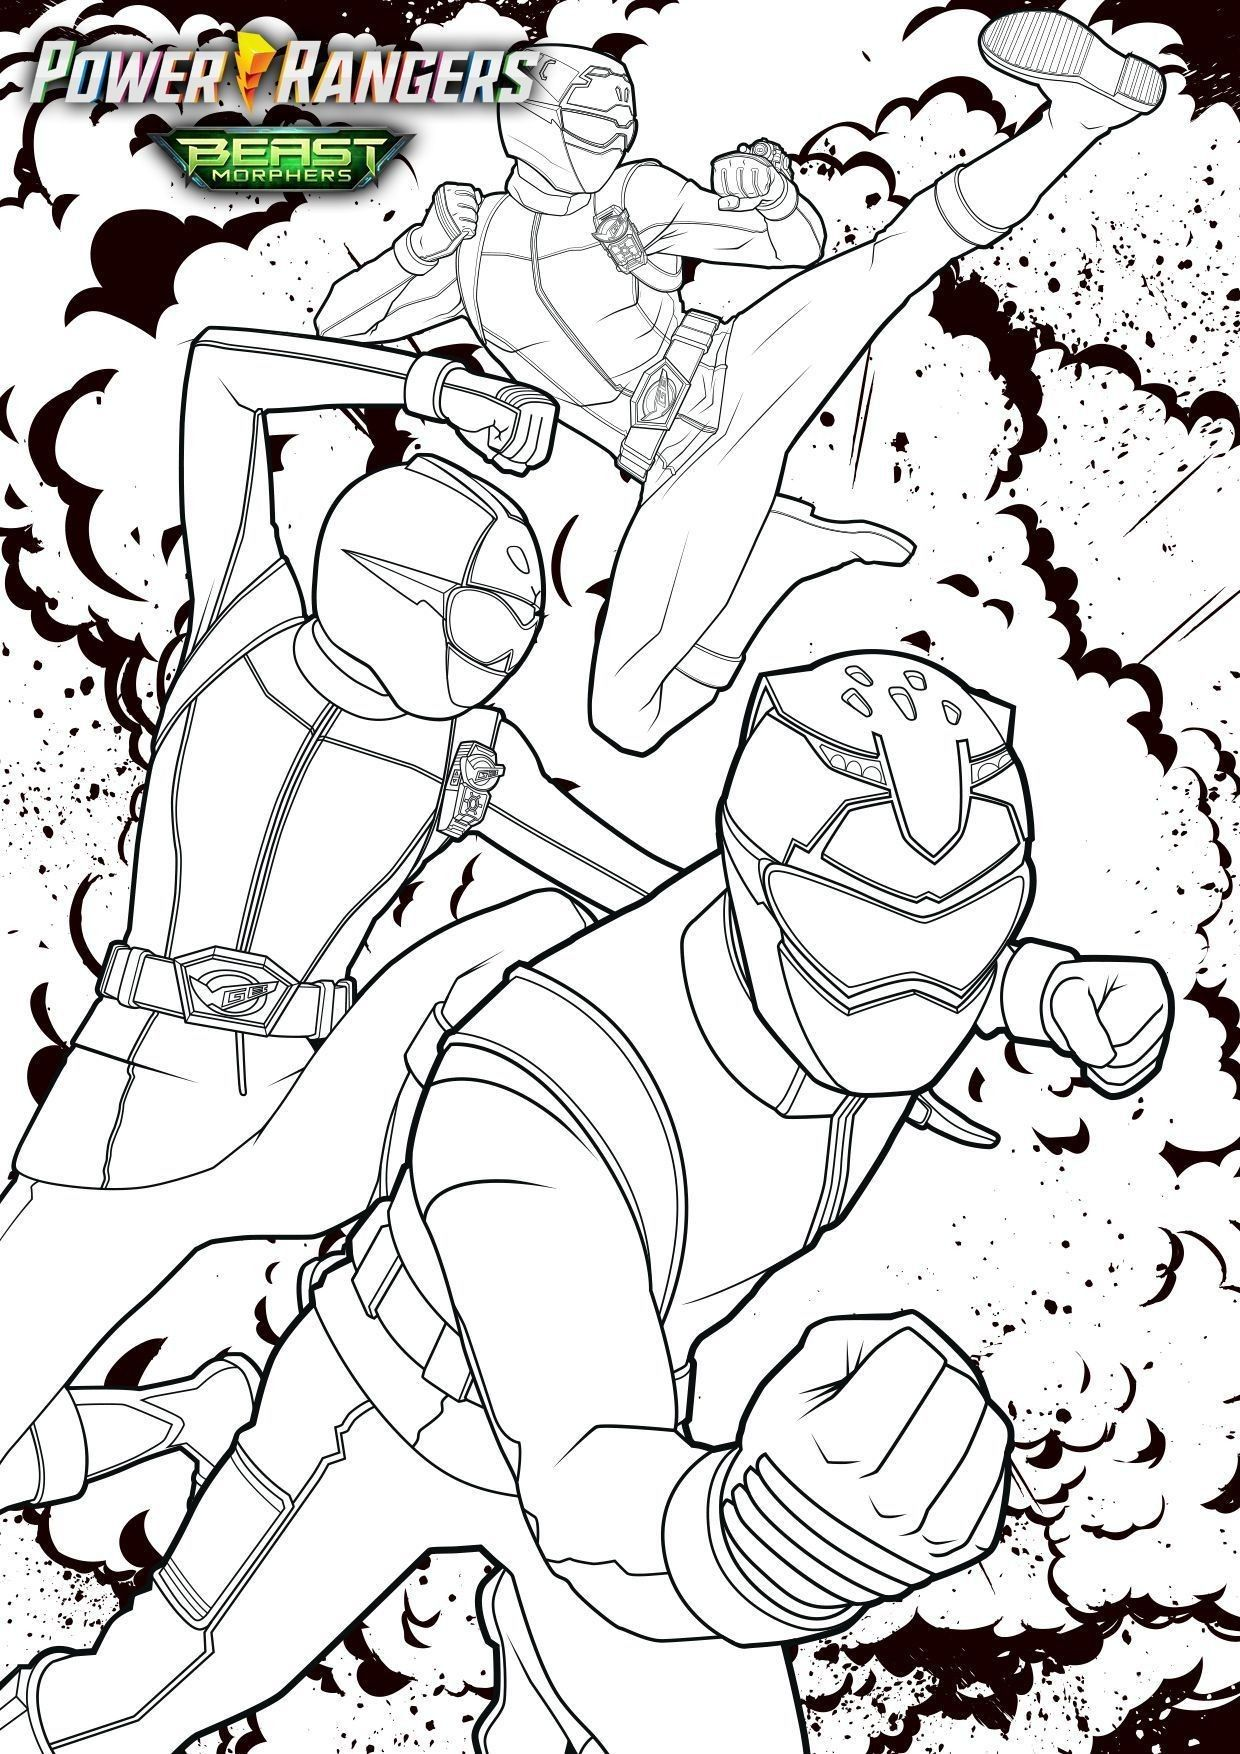 Coloriages Power Rangers Beast Morphers A Imprimer Power Rangers Beast Morphers Power Rangers Coloring Pages Coloring Pages Power Rangers